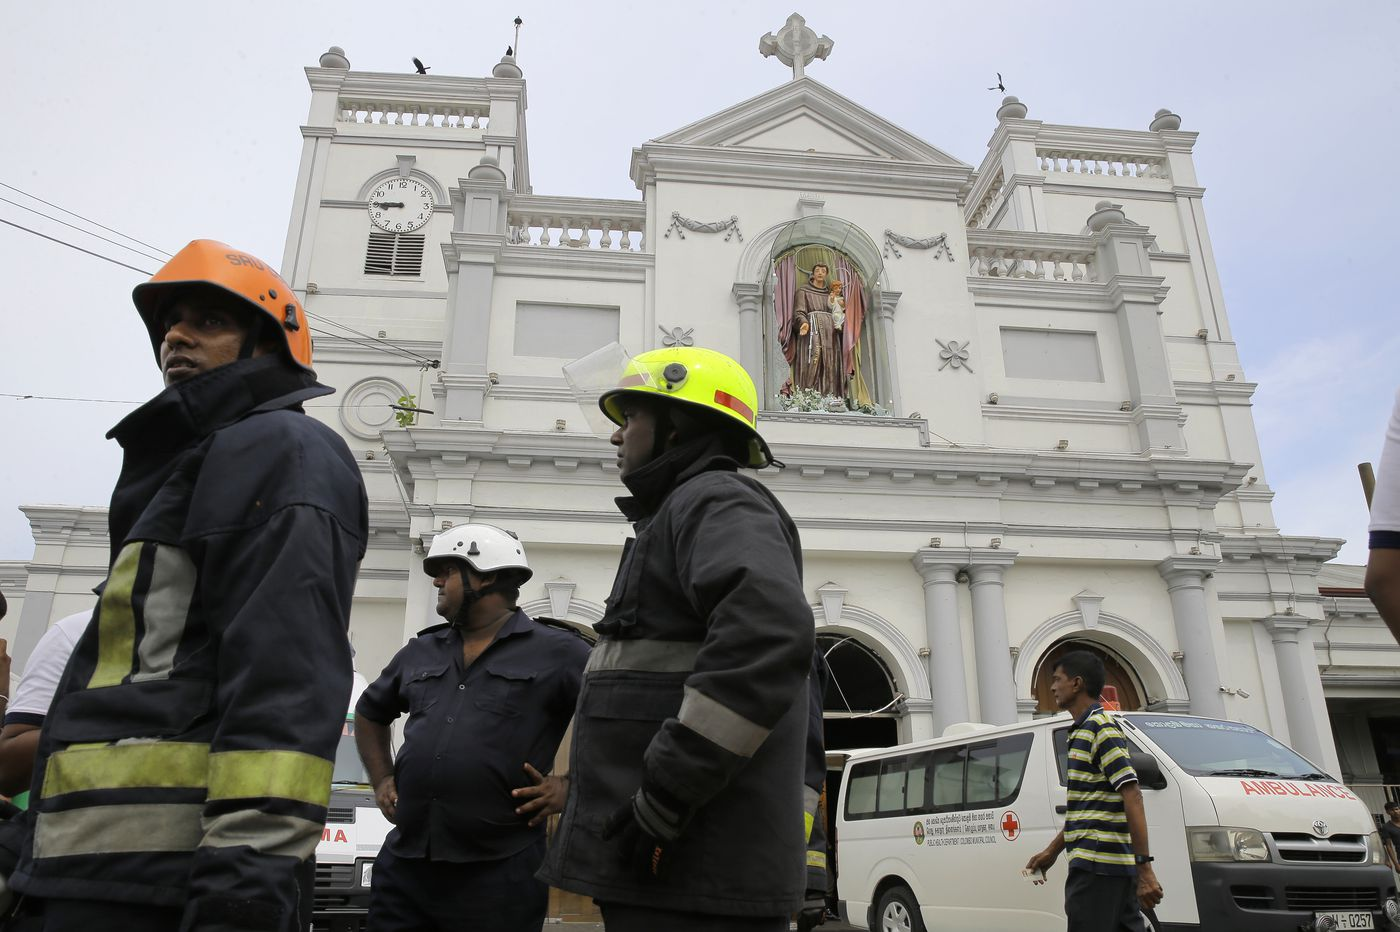 Explosions kill at least 190 in Sri Lanka; Philly continues Easter traditions; Sixers go up 3-1 over Nets